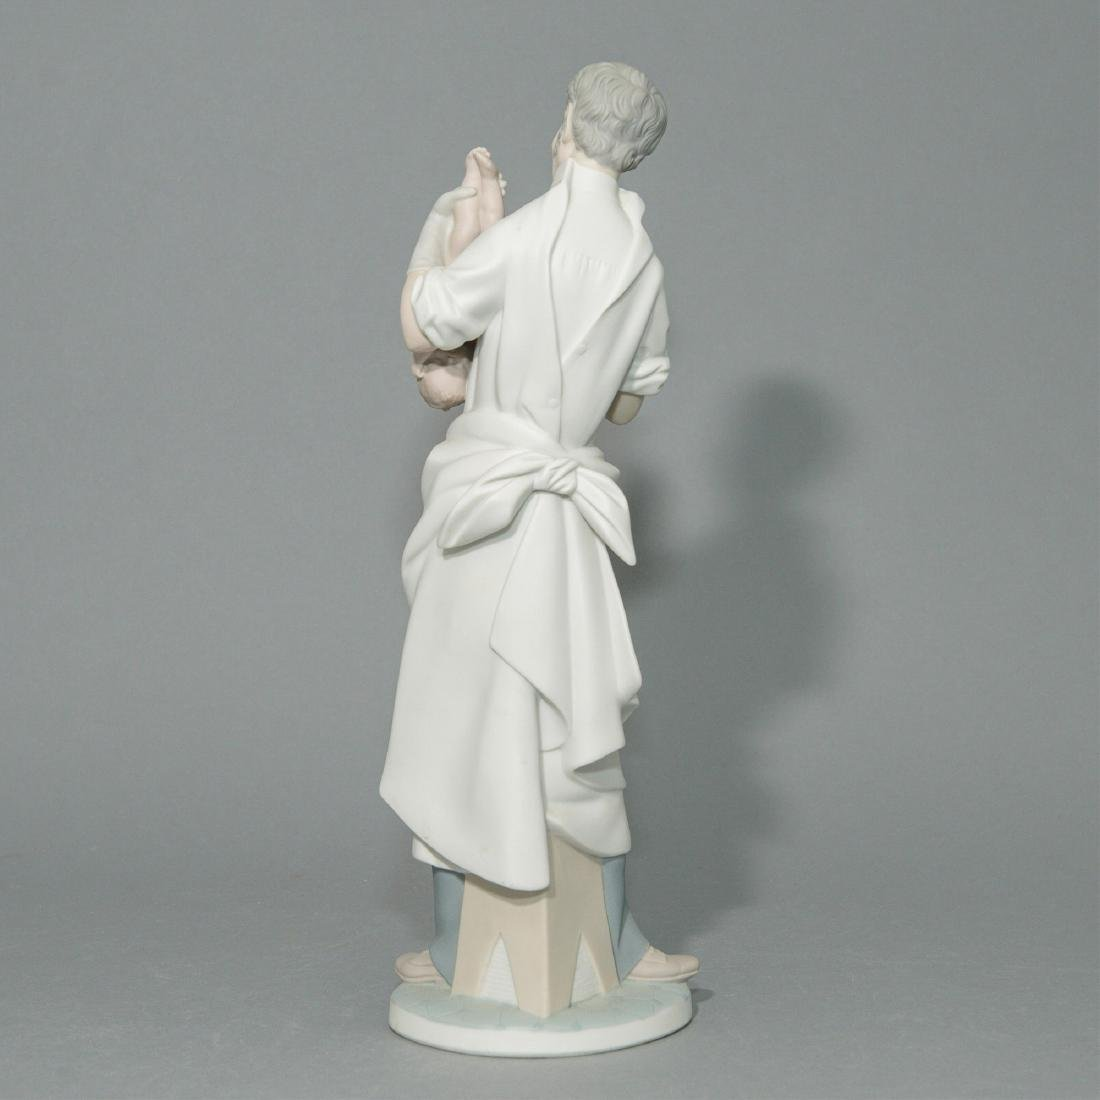 LLADRO OBSTETRICIAN PORCELAIN FIGURINE - 3